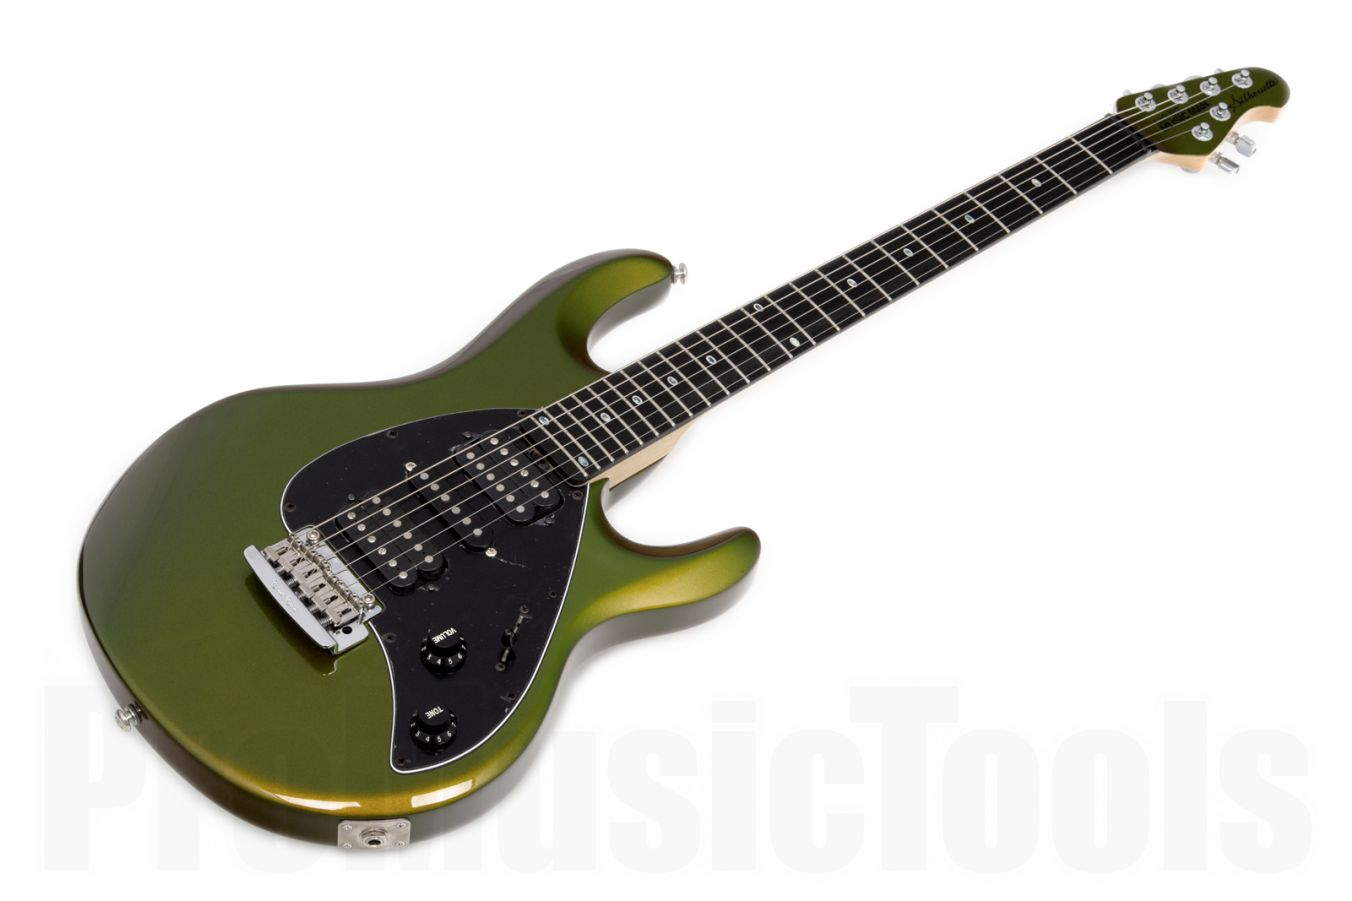 Music Man USA Silhouette HSH Trem DD - Dargie Delight II Limited Edition MH